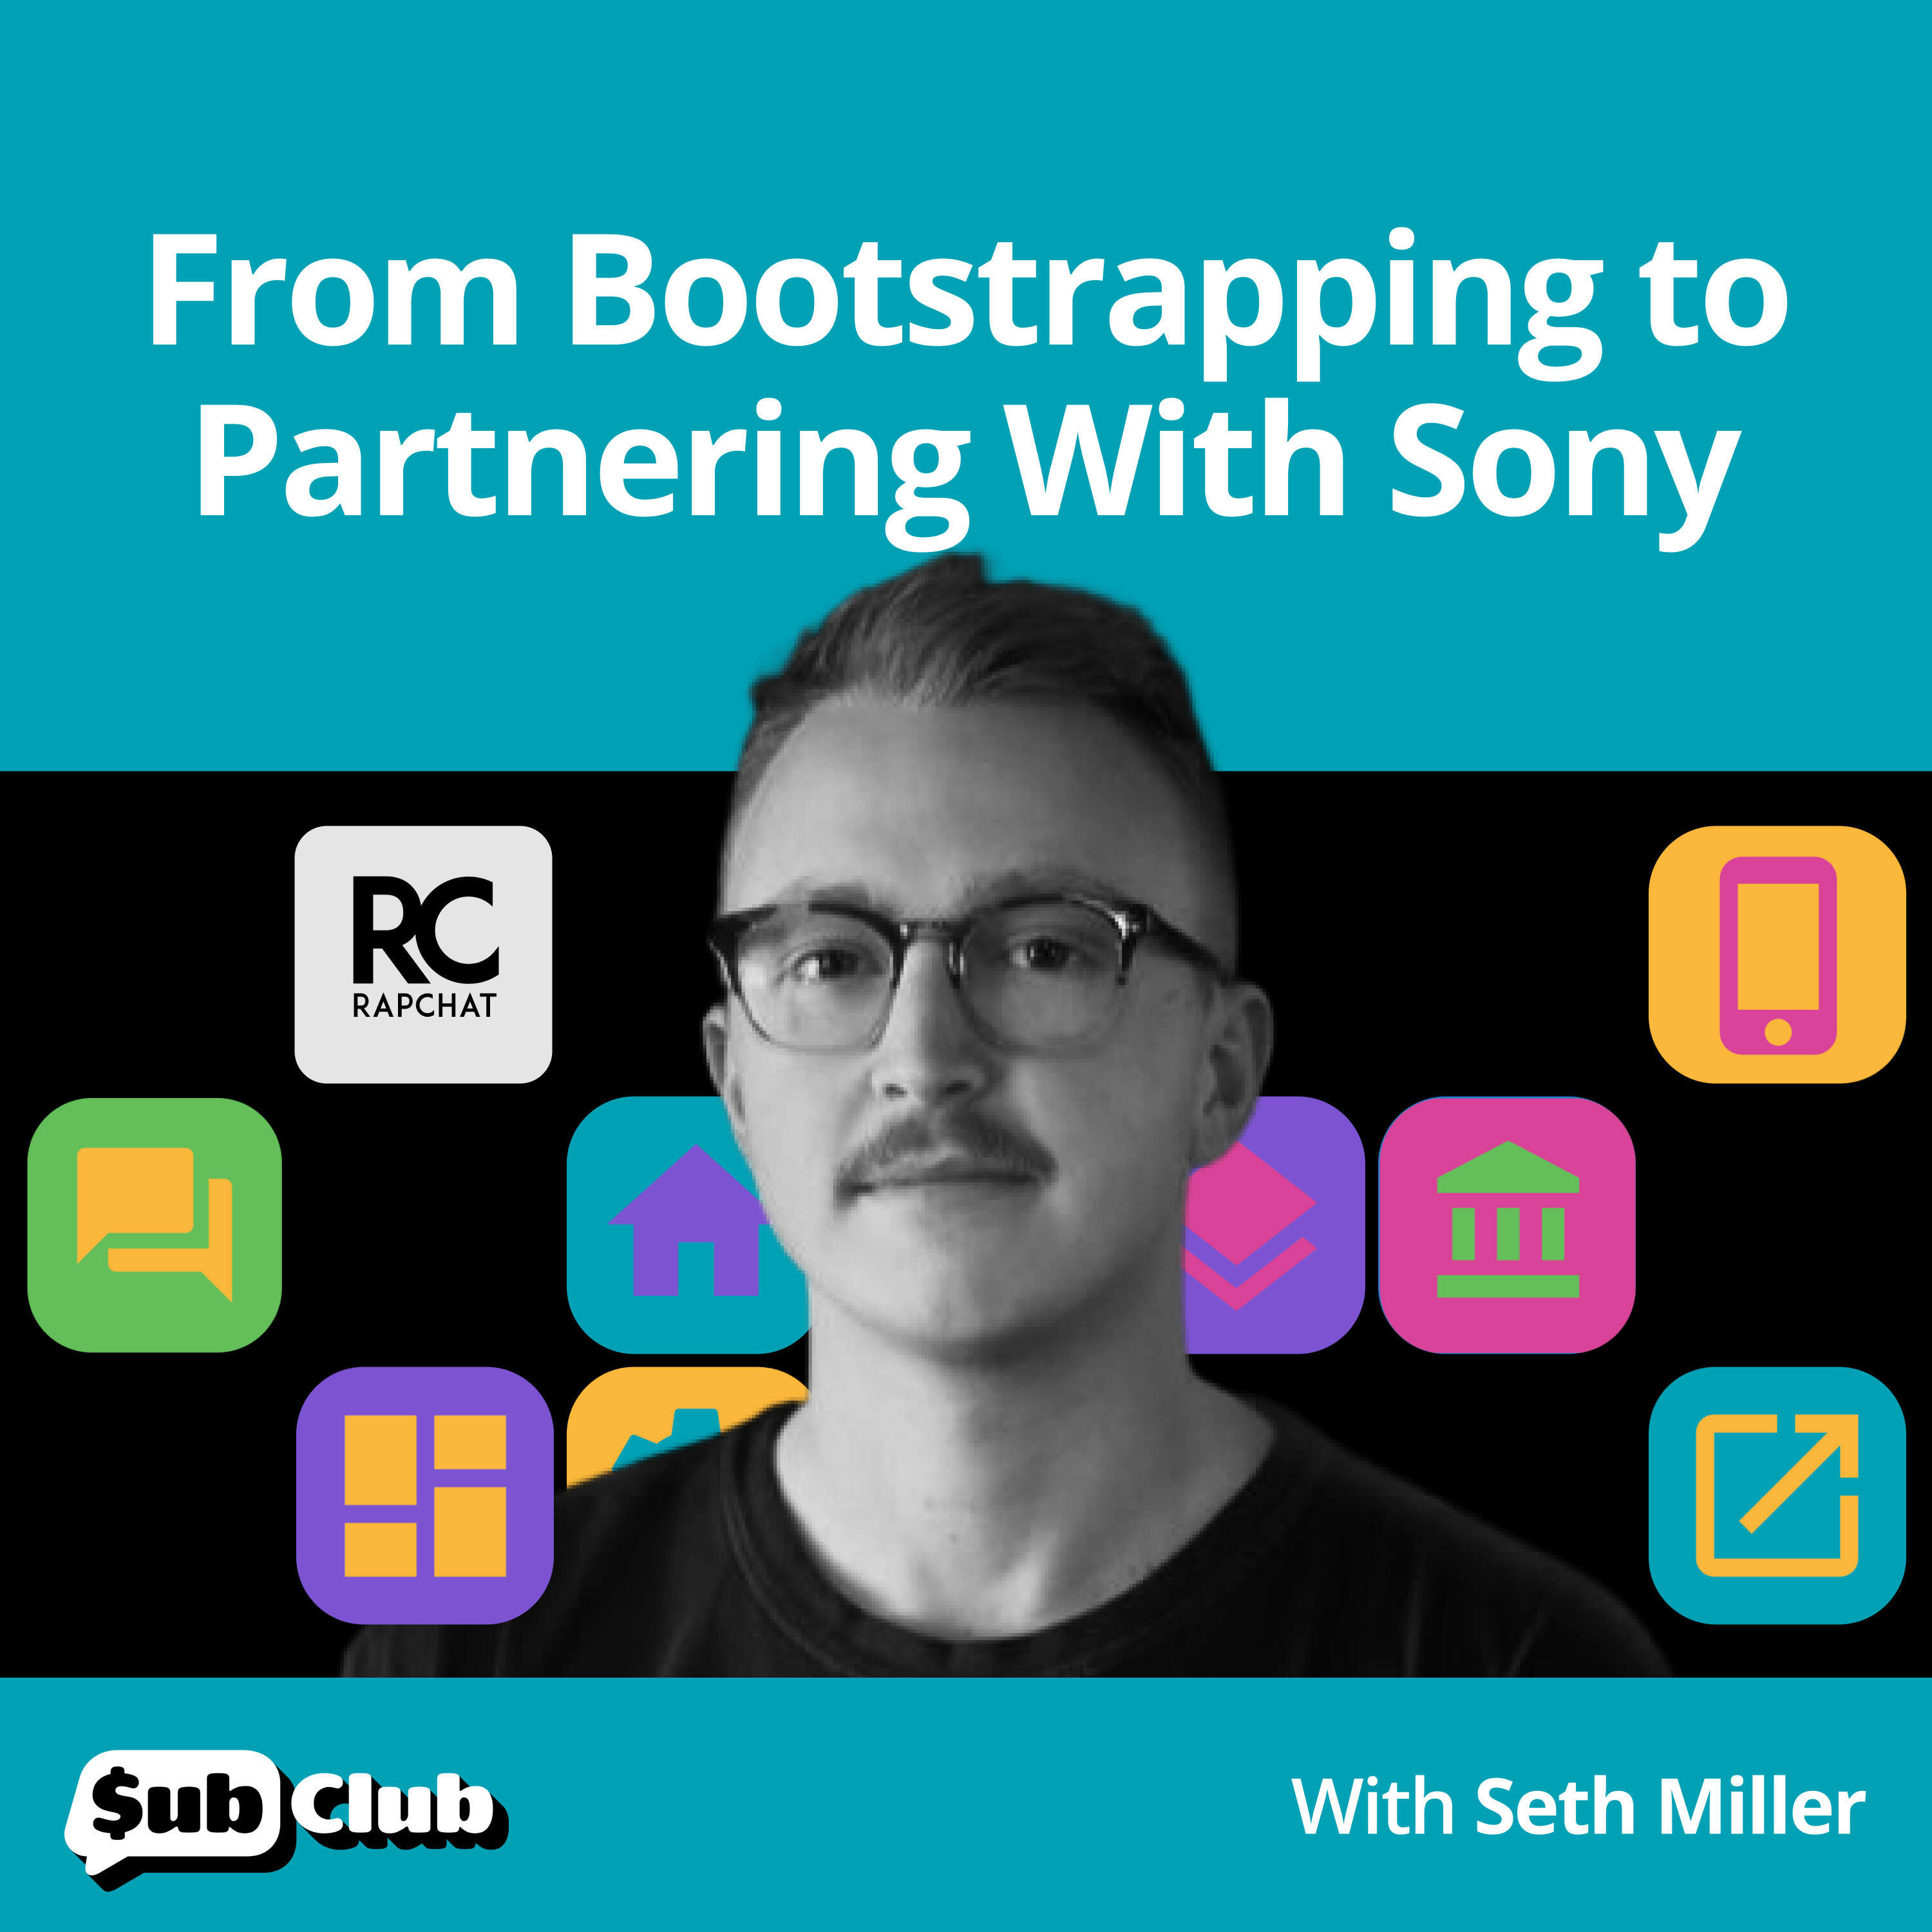 Seth Miller, Rapchat - From Bootstrapping to Partnering With Sony